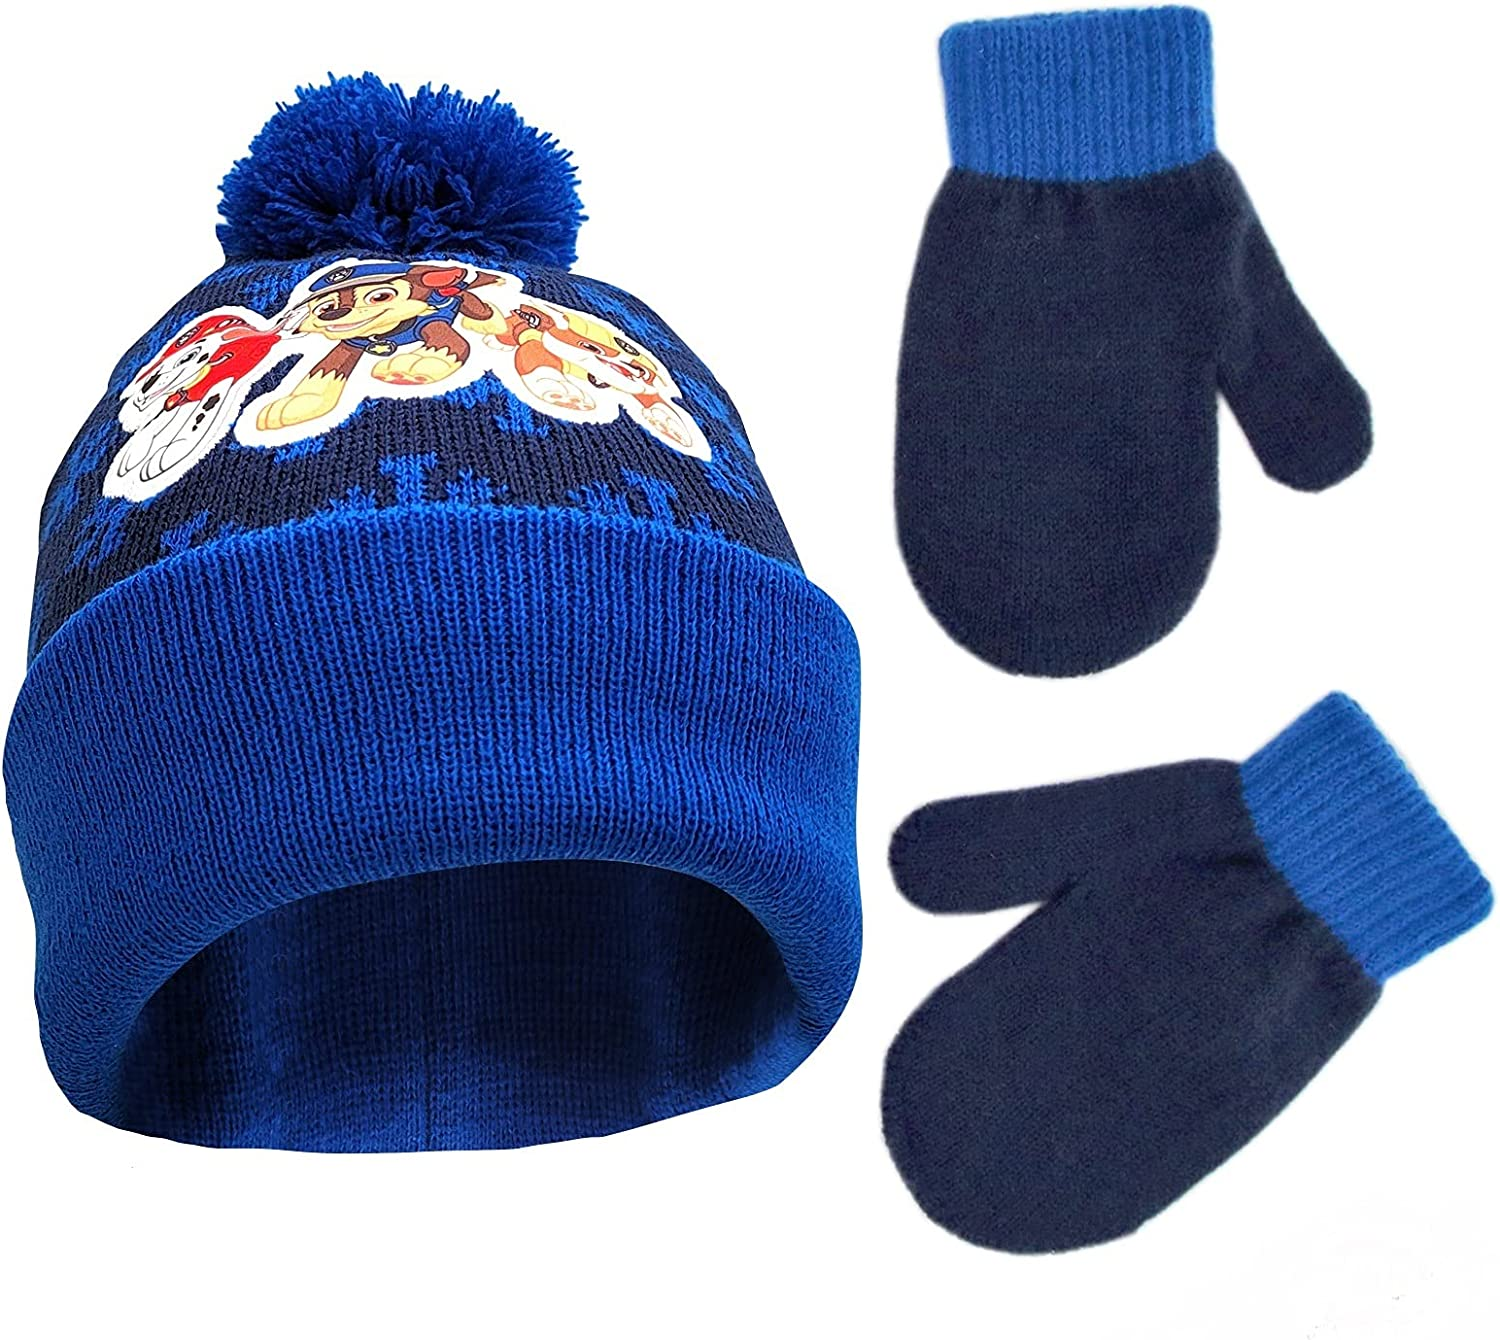 Nickelodeon Boys Winter Hat Set, Paw Patrol's Marshall, Chase and Rubble Toddler Beanie and Mittens for Kids Age 2-4